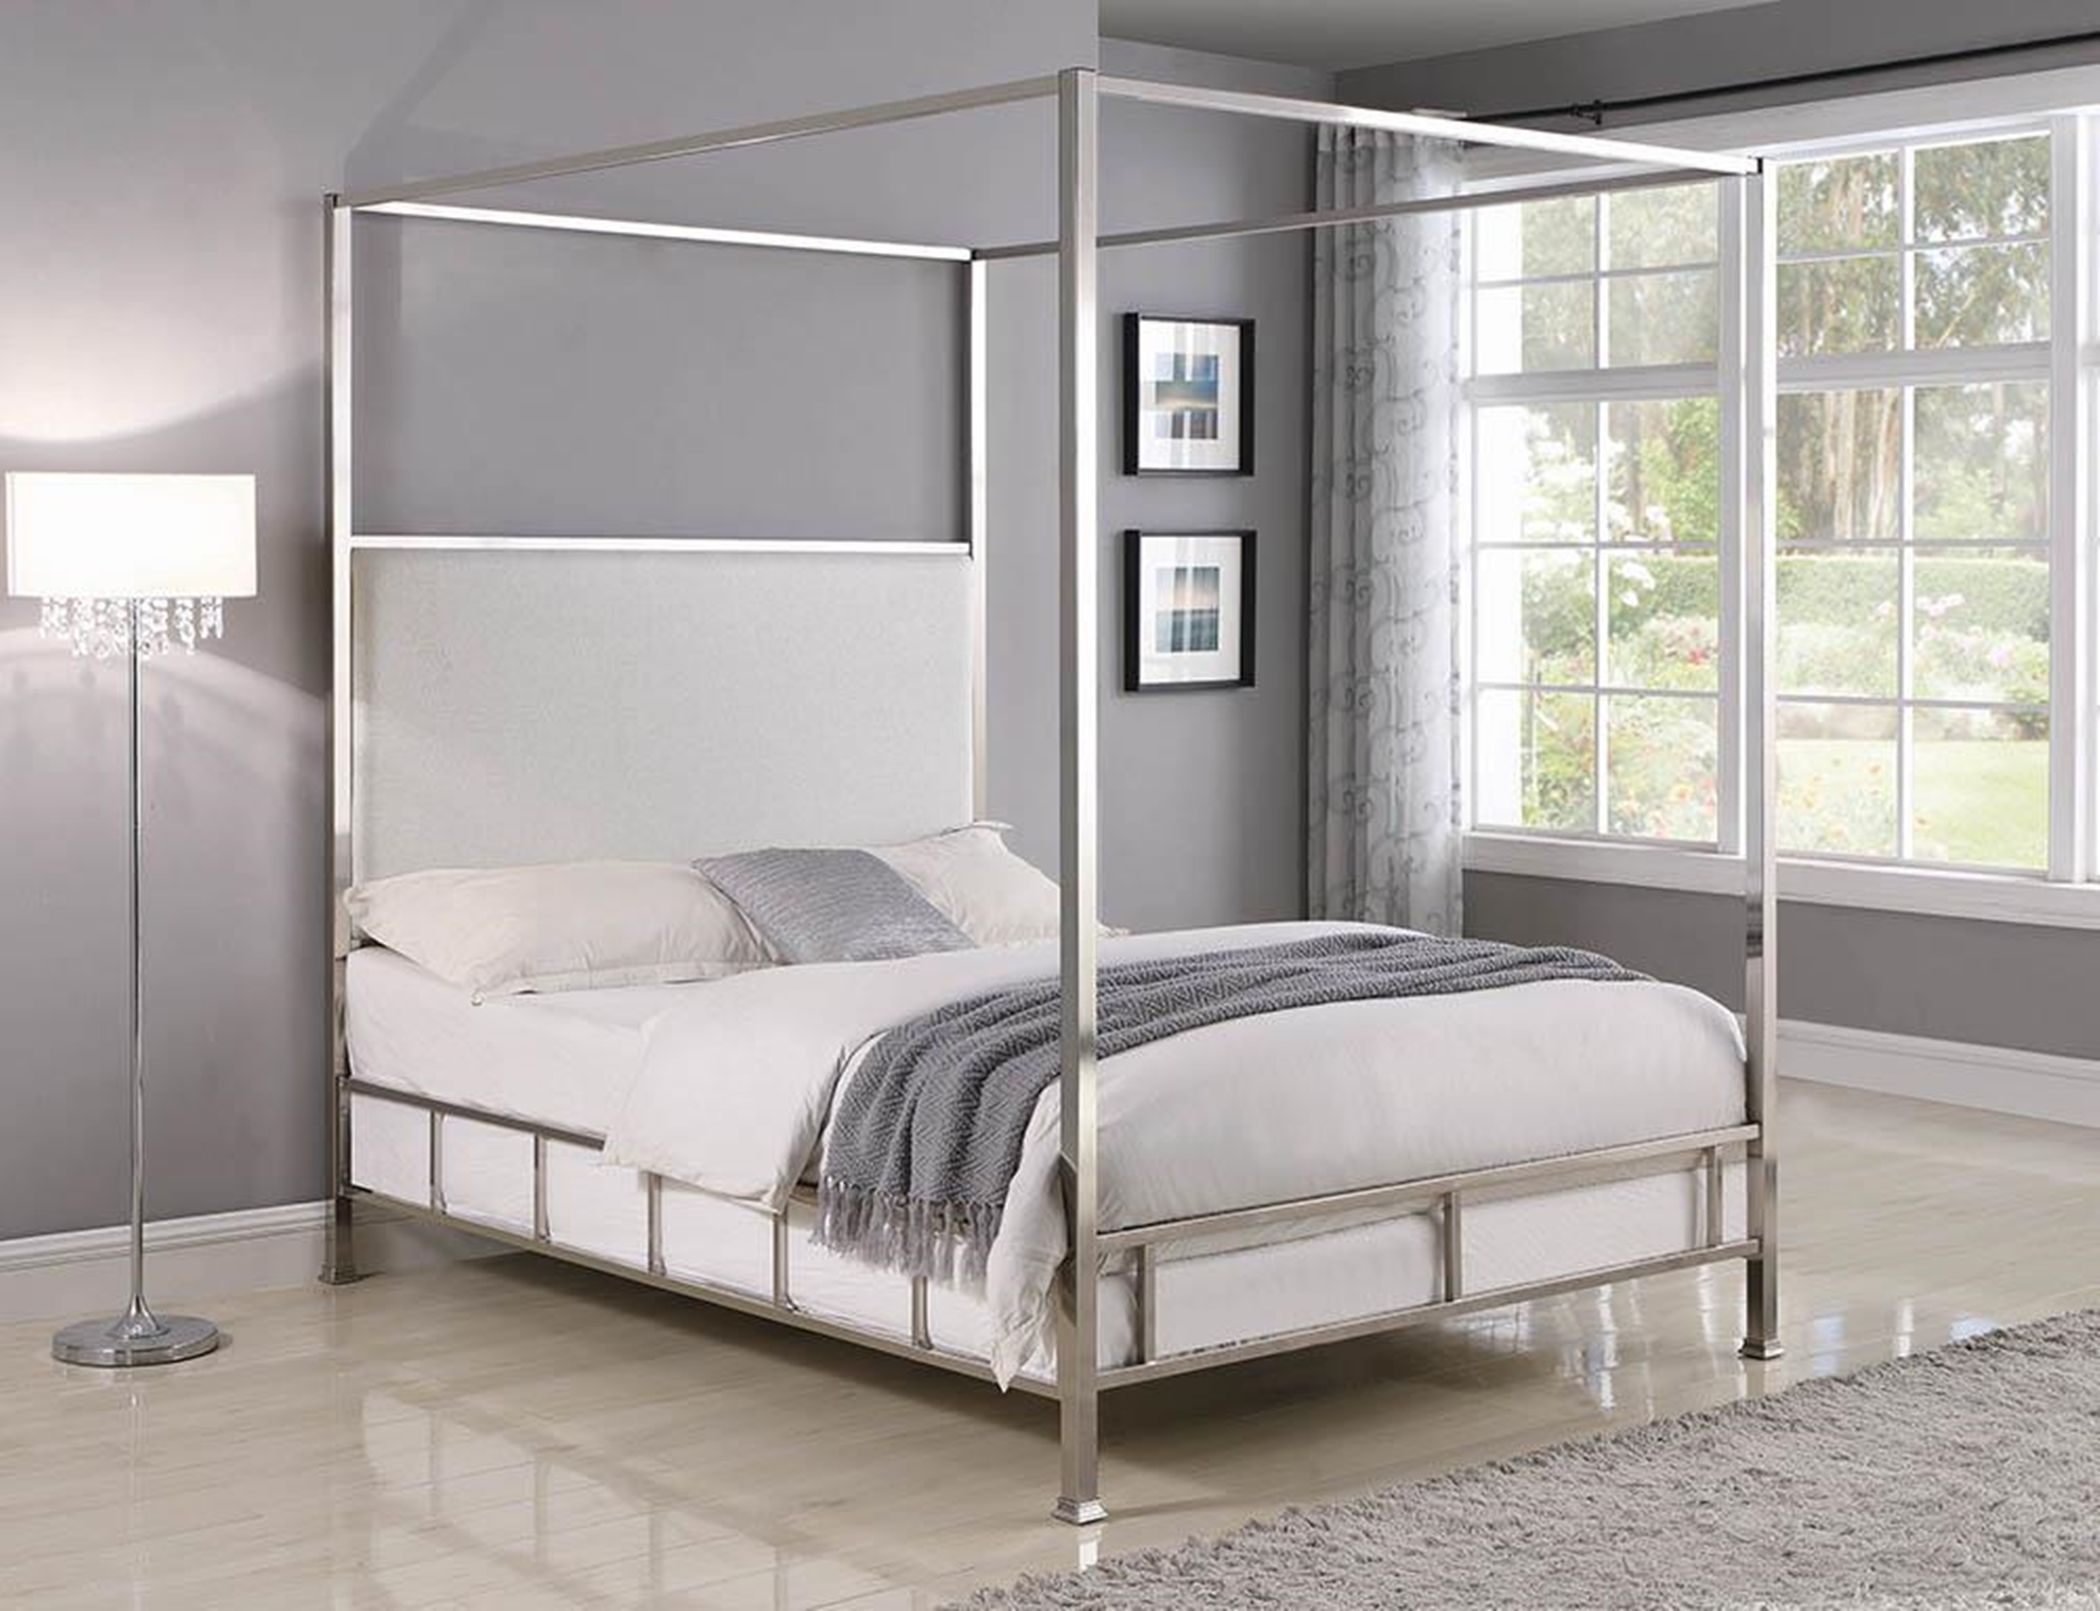 Claire C King Bed